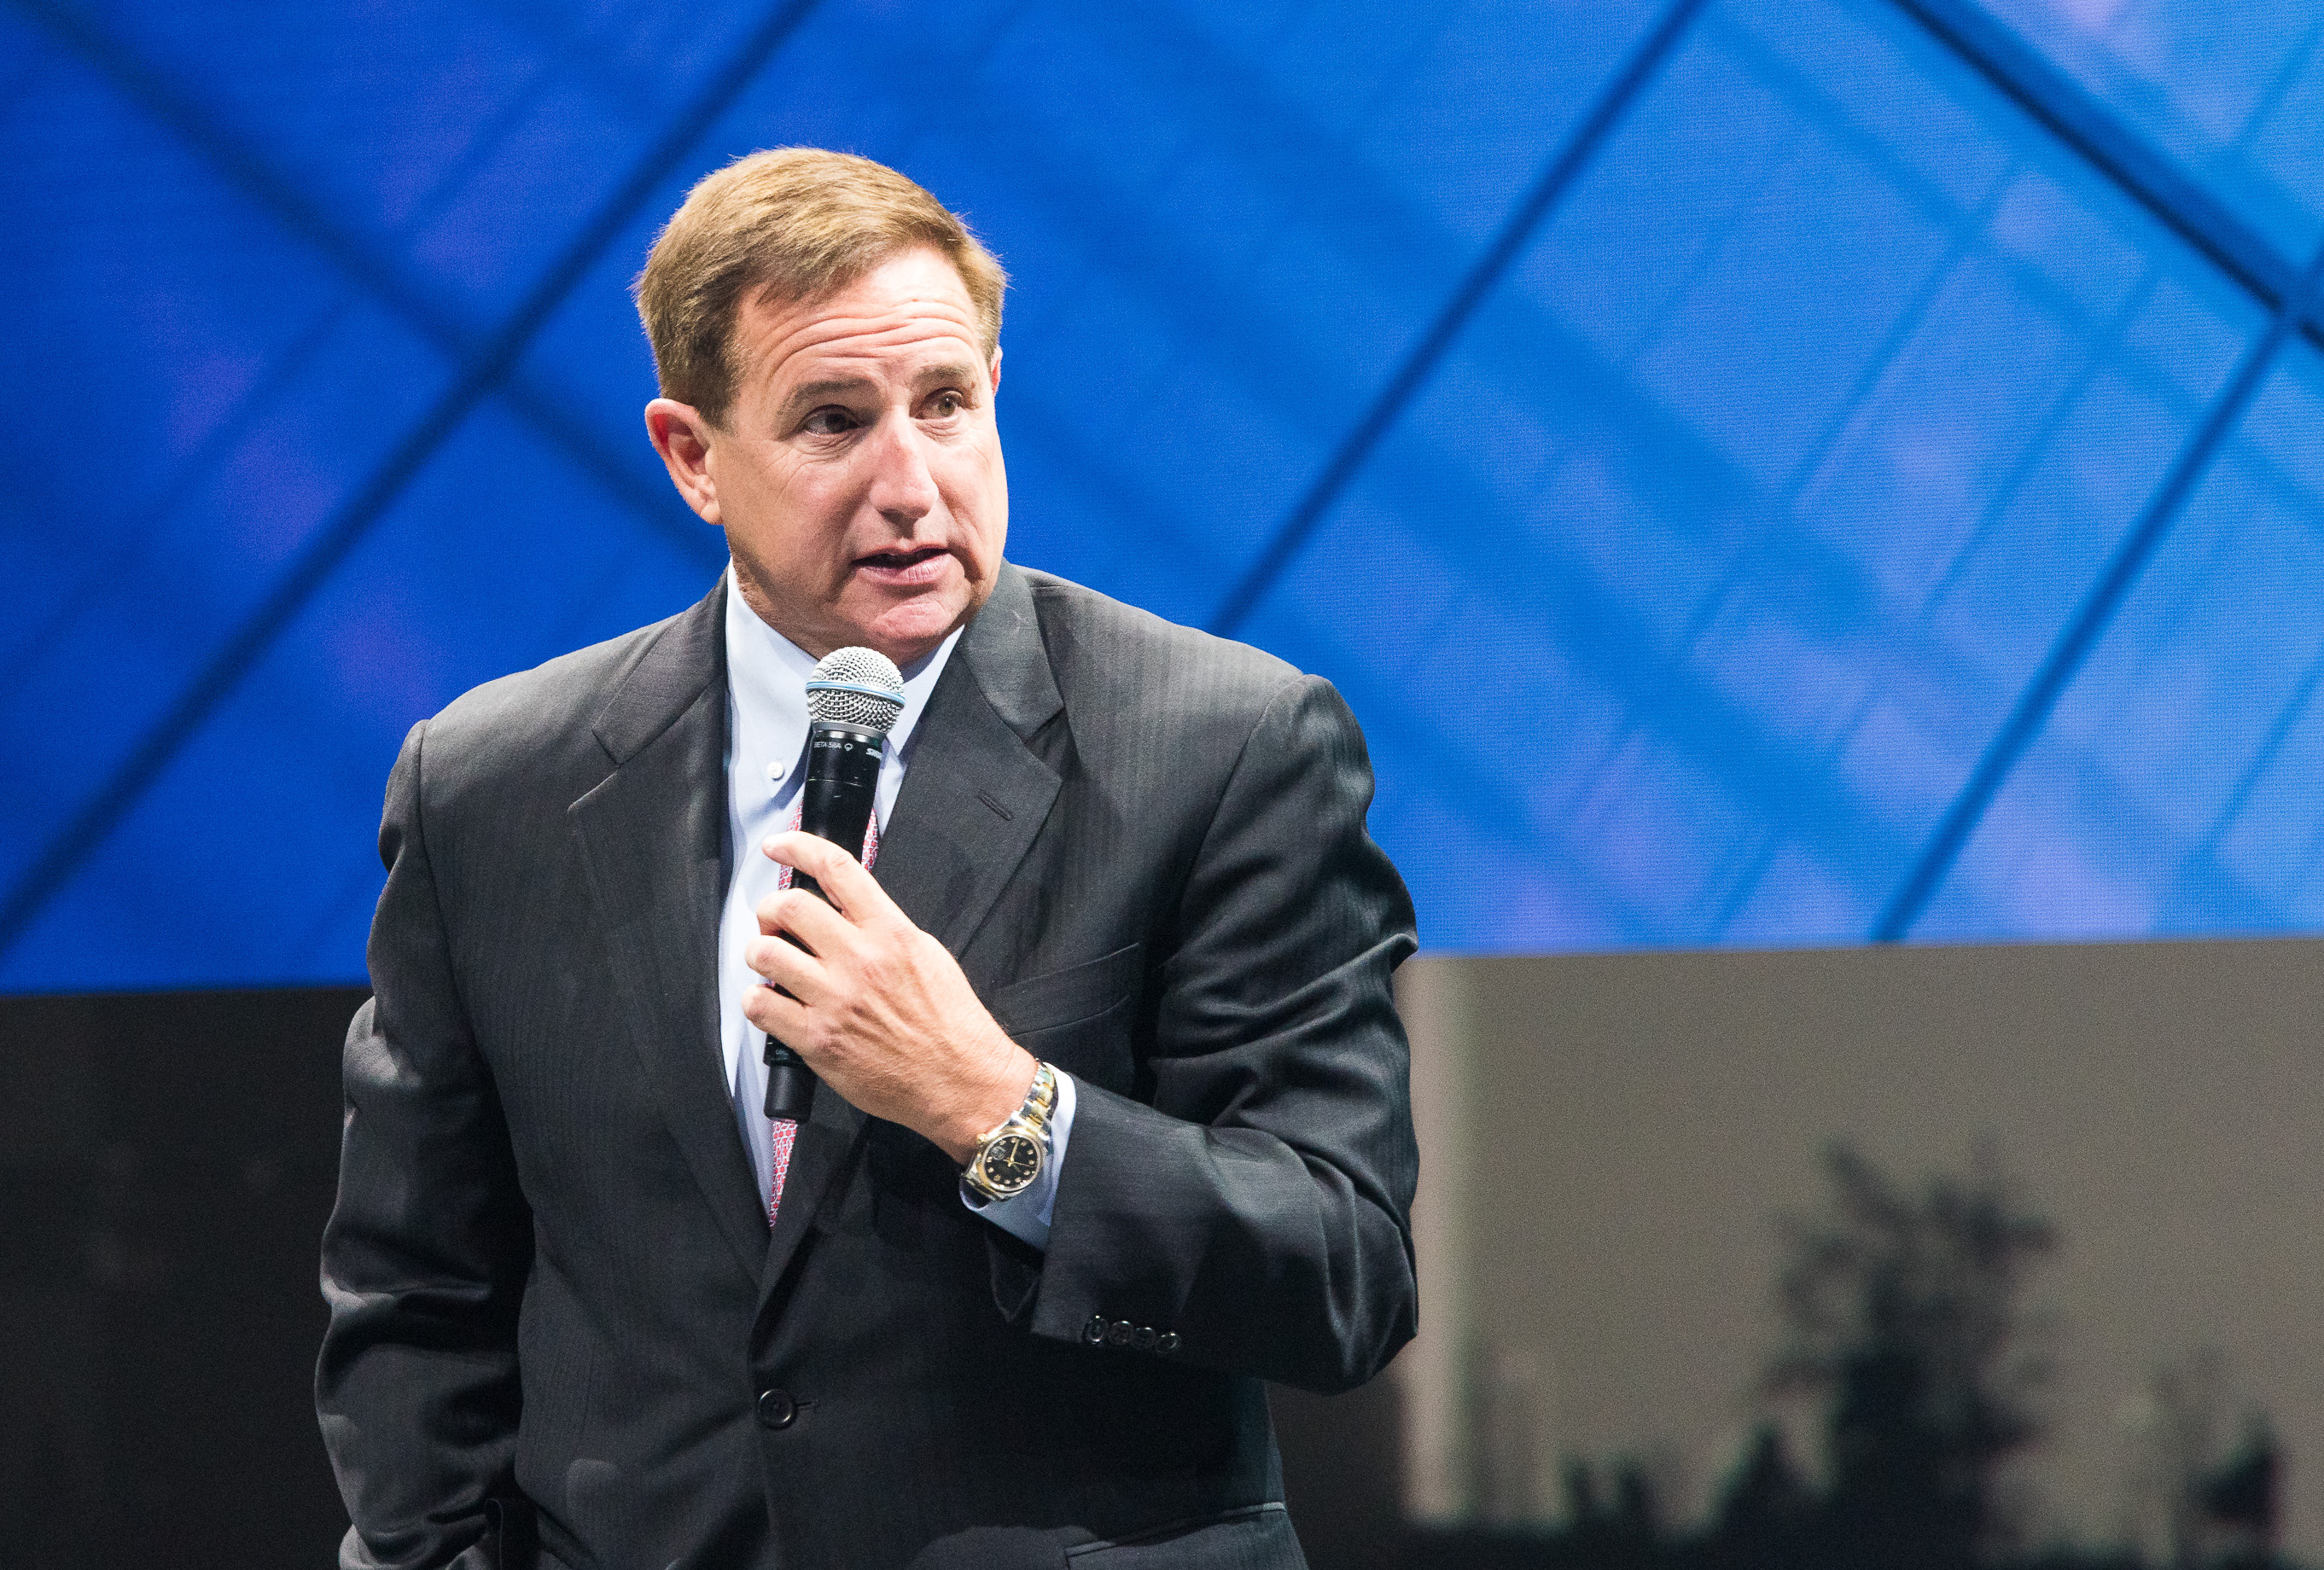 SUITEWORLD | Oracle CEO outlines the future of NetSuite - Upgrade